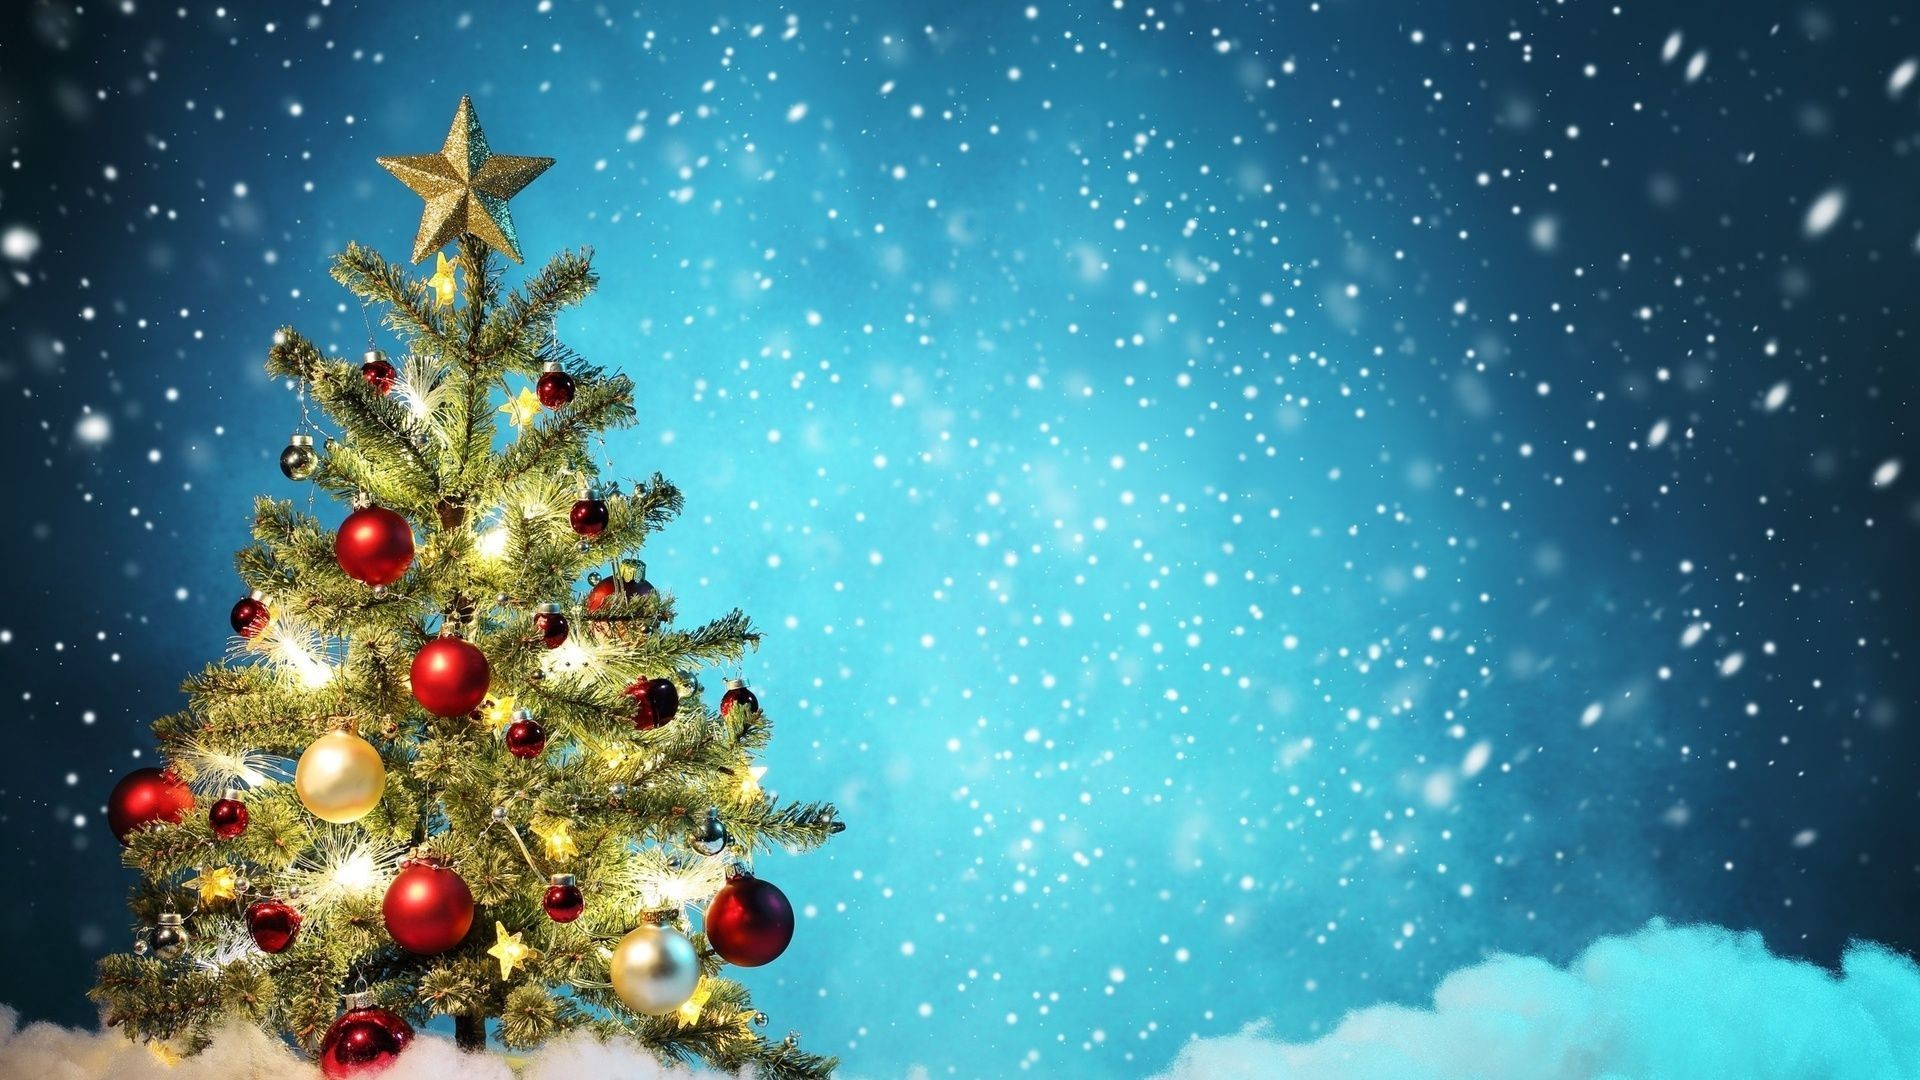 Res: 1920x1080, Christmas HD Wallpapers, Bessie Schuelke for mobile and desktop